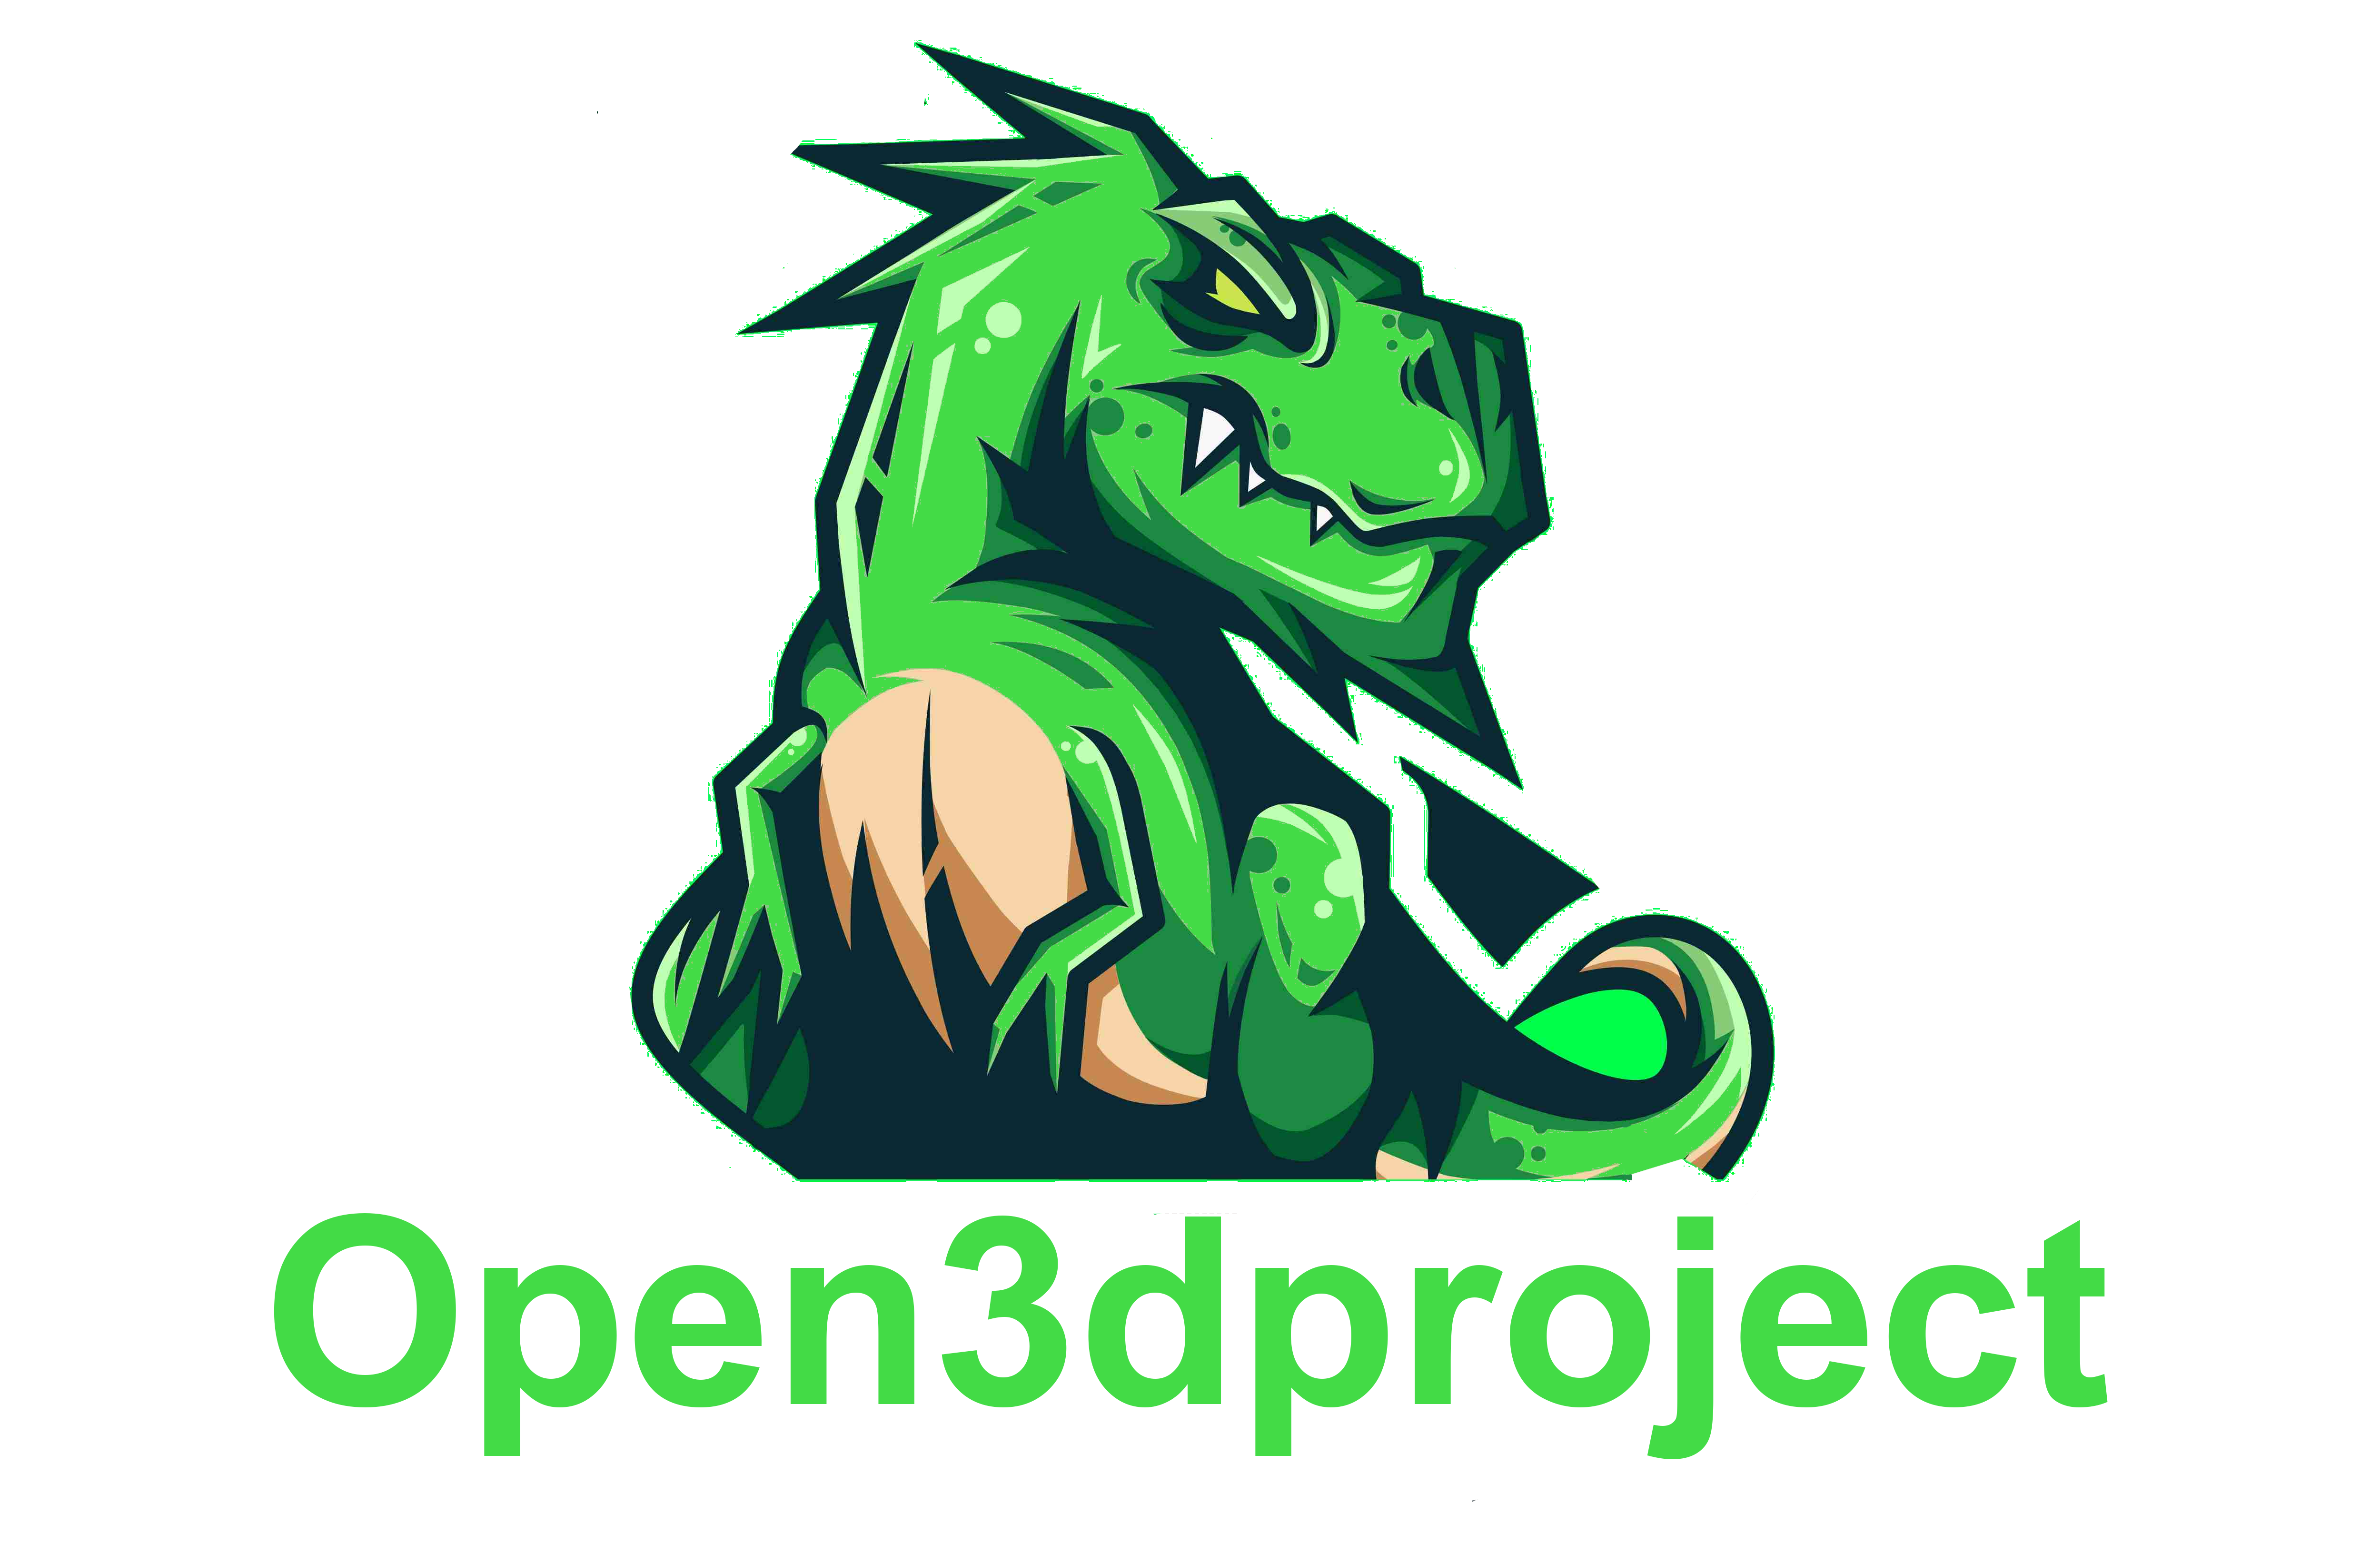 open3dproject